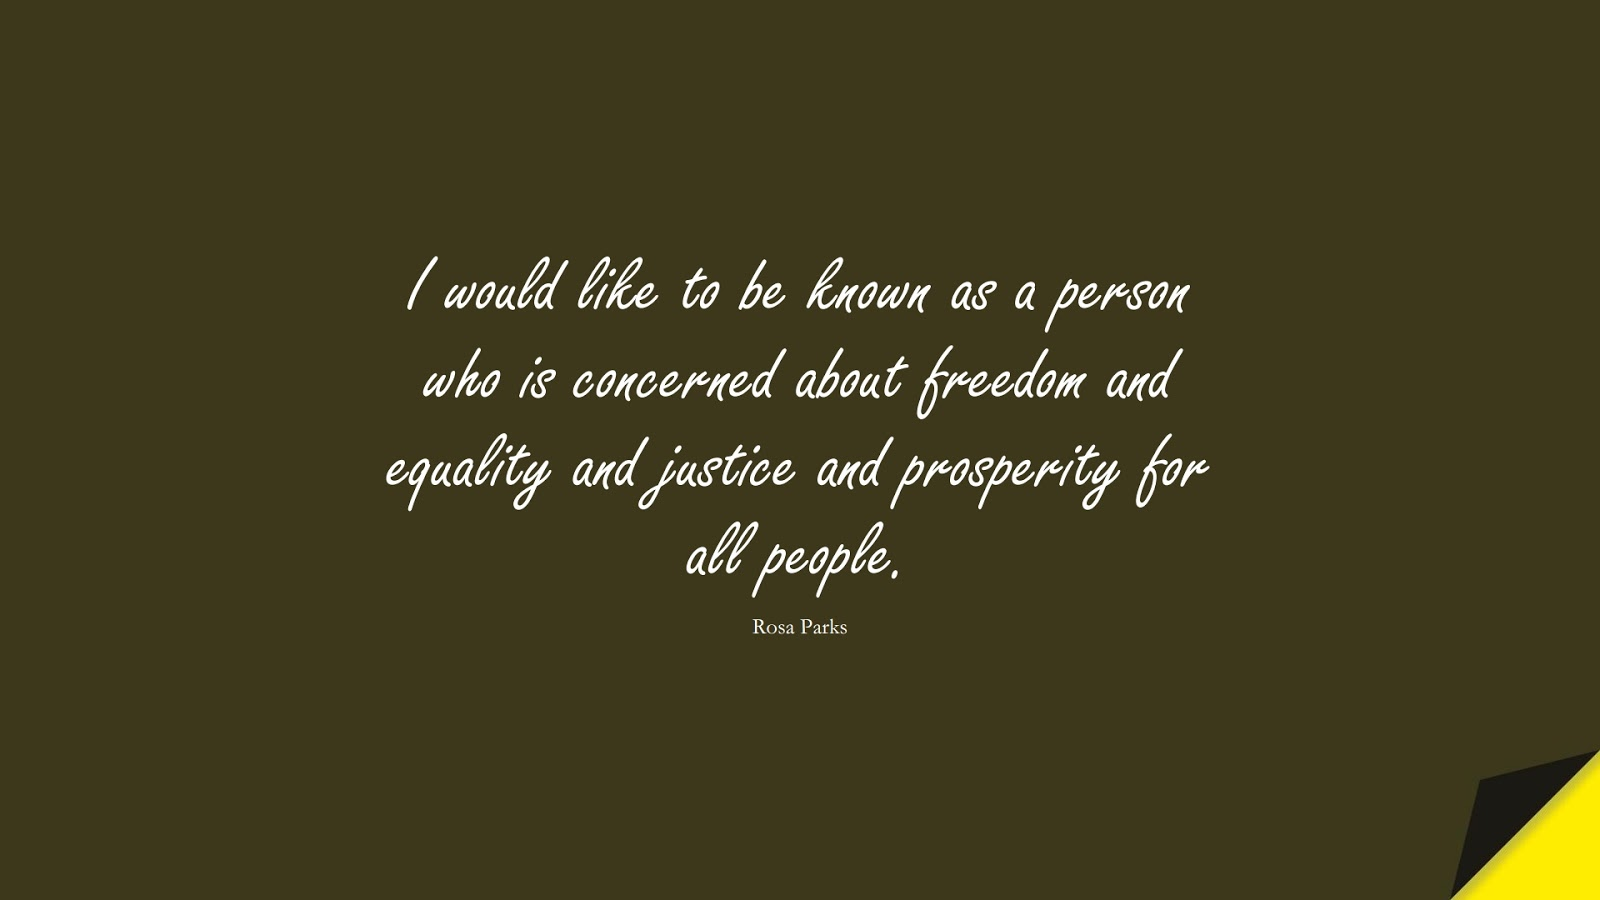 I would like to be known as a person who is concerned about freedom and equality and justice and prosperity for all people. (Rosa Parks);  #HumanityQuotes